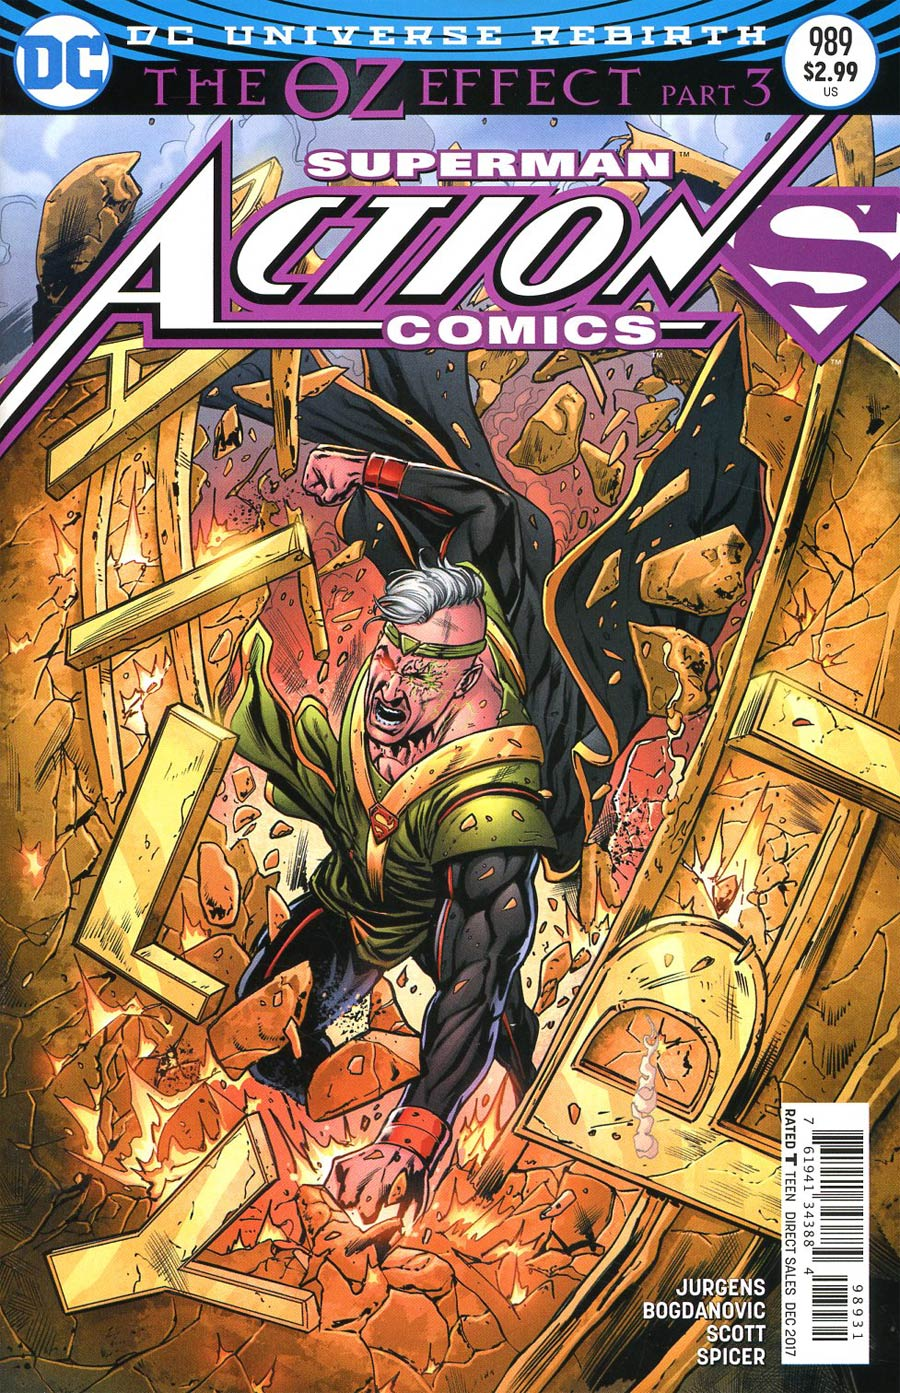 Action Comics Vol 2 #989 Cover C Variant Neil Edwards & Jay Leisten Cover